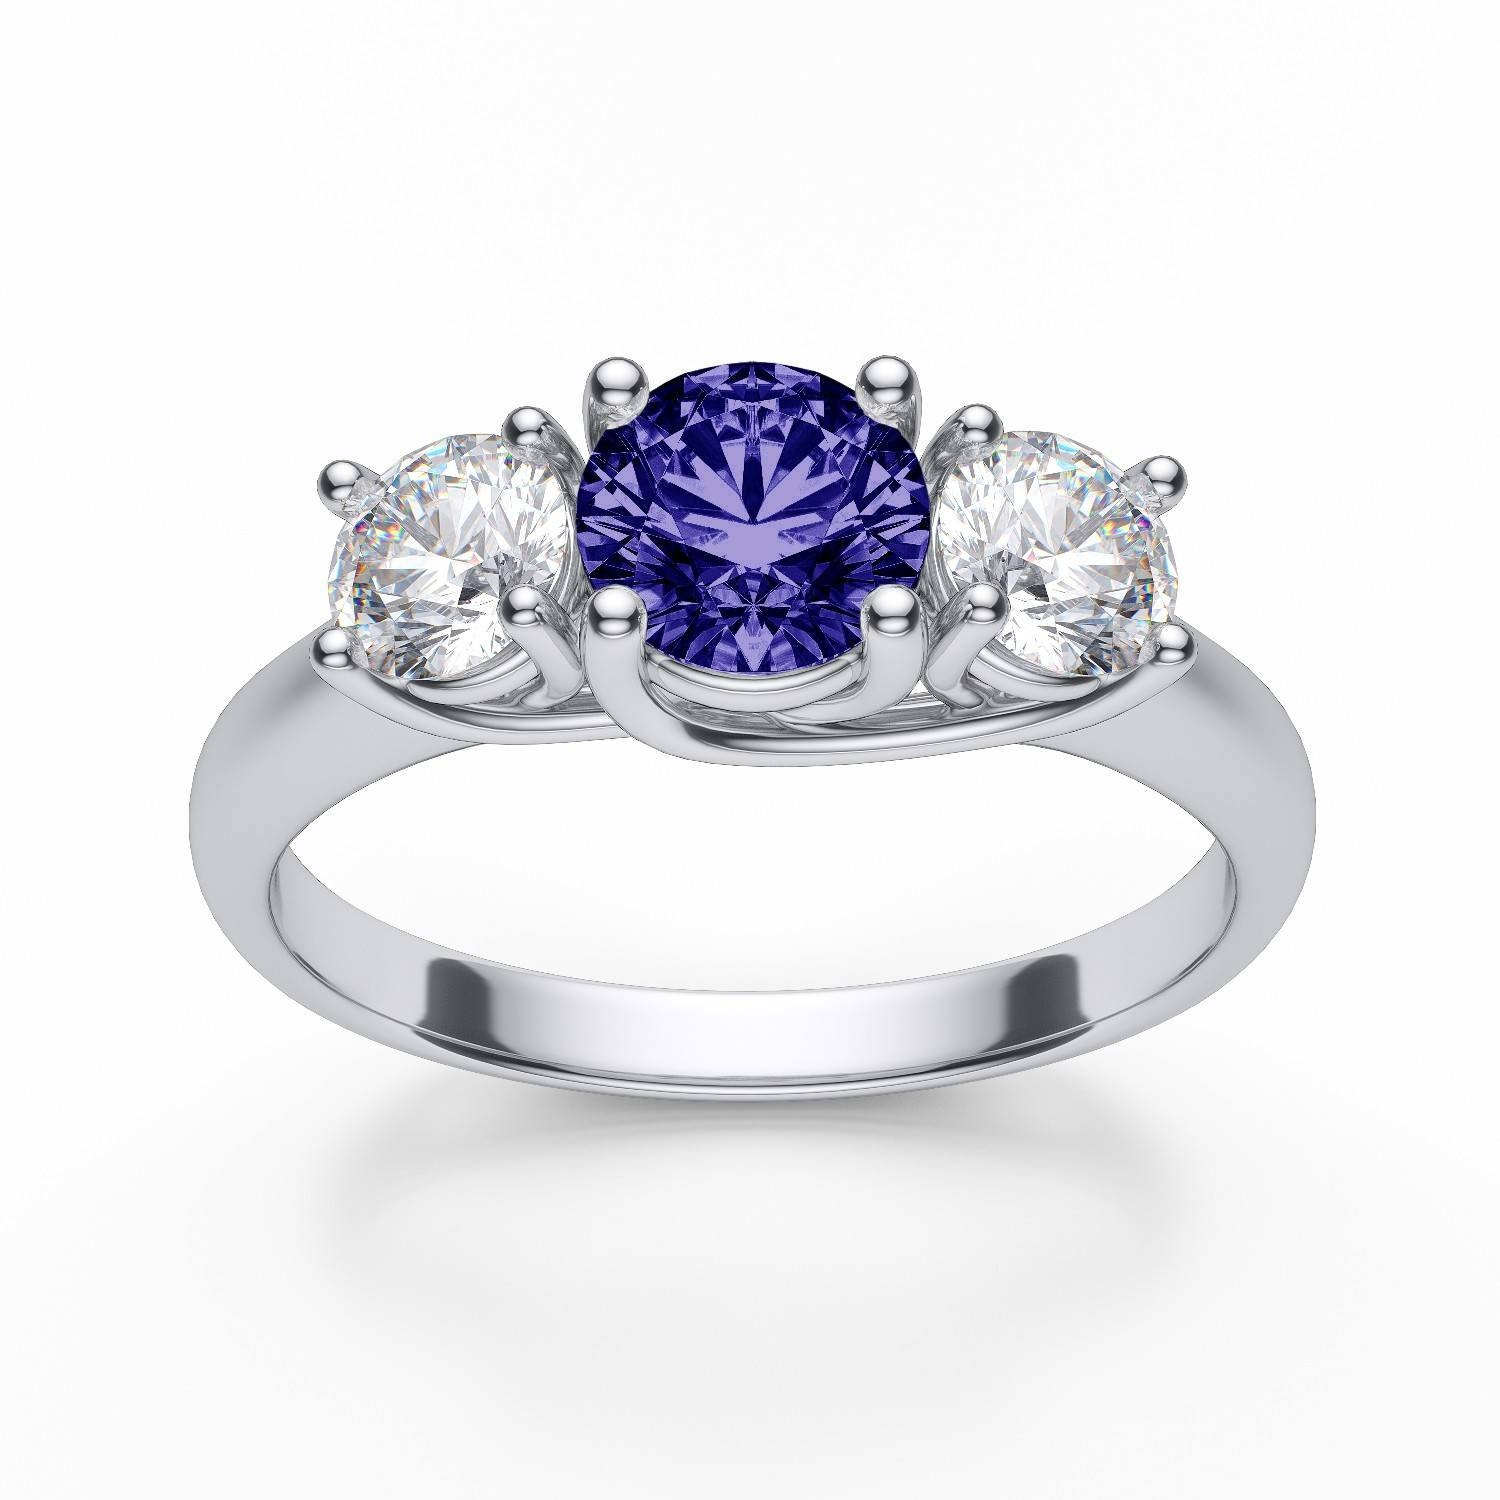 5mm Prong Set Tanzanite And Diamond Engagement Ring In 14k White Gold Pertaining To Tanzanite Engagement Rings With White Gold (View 14 of 15)